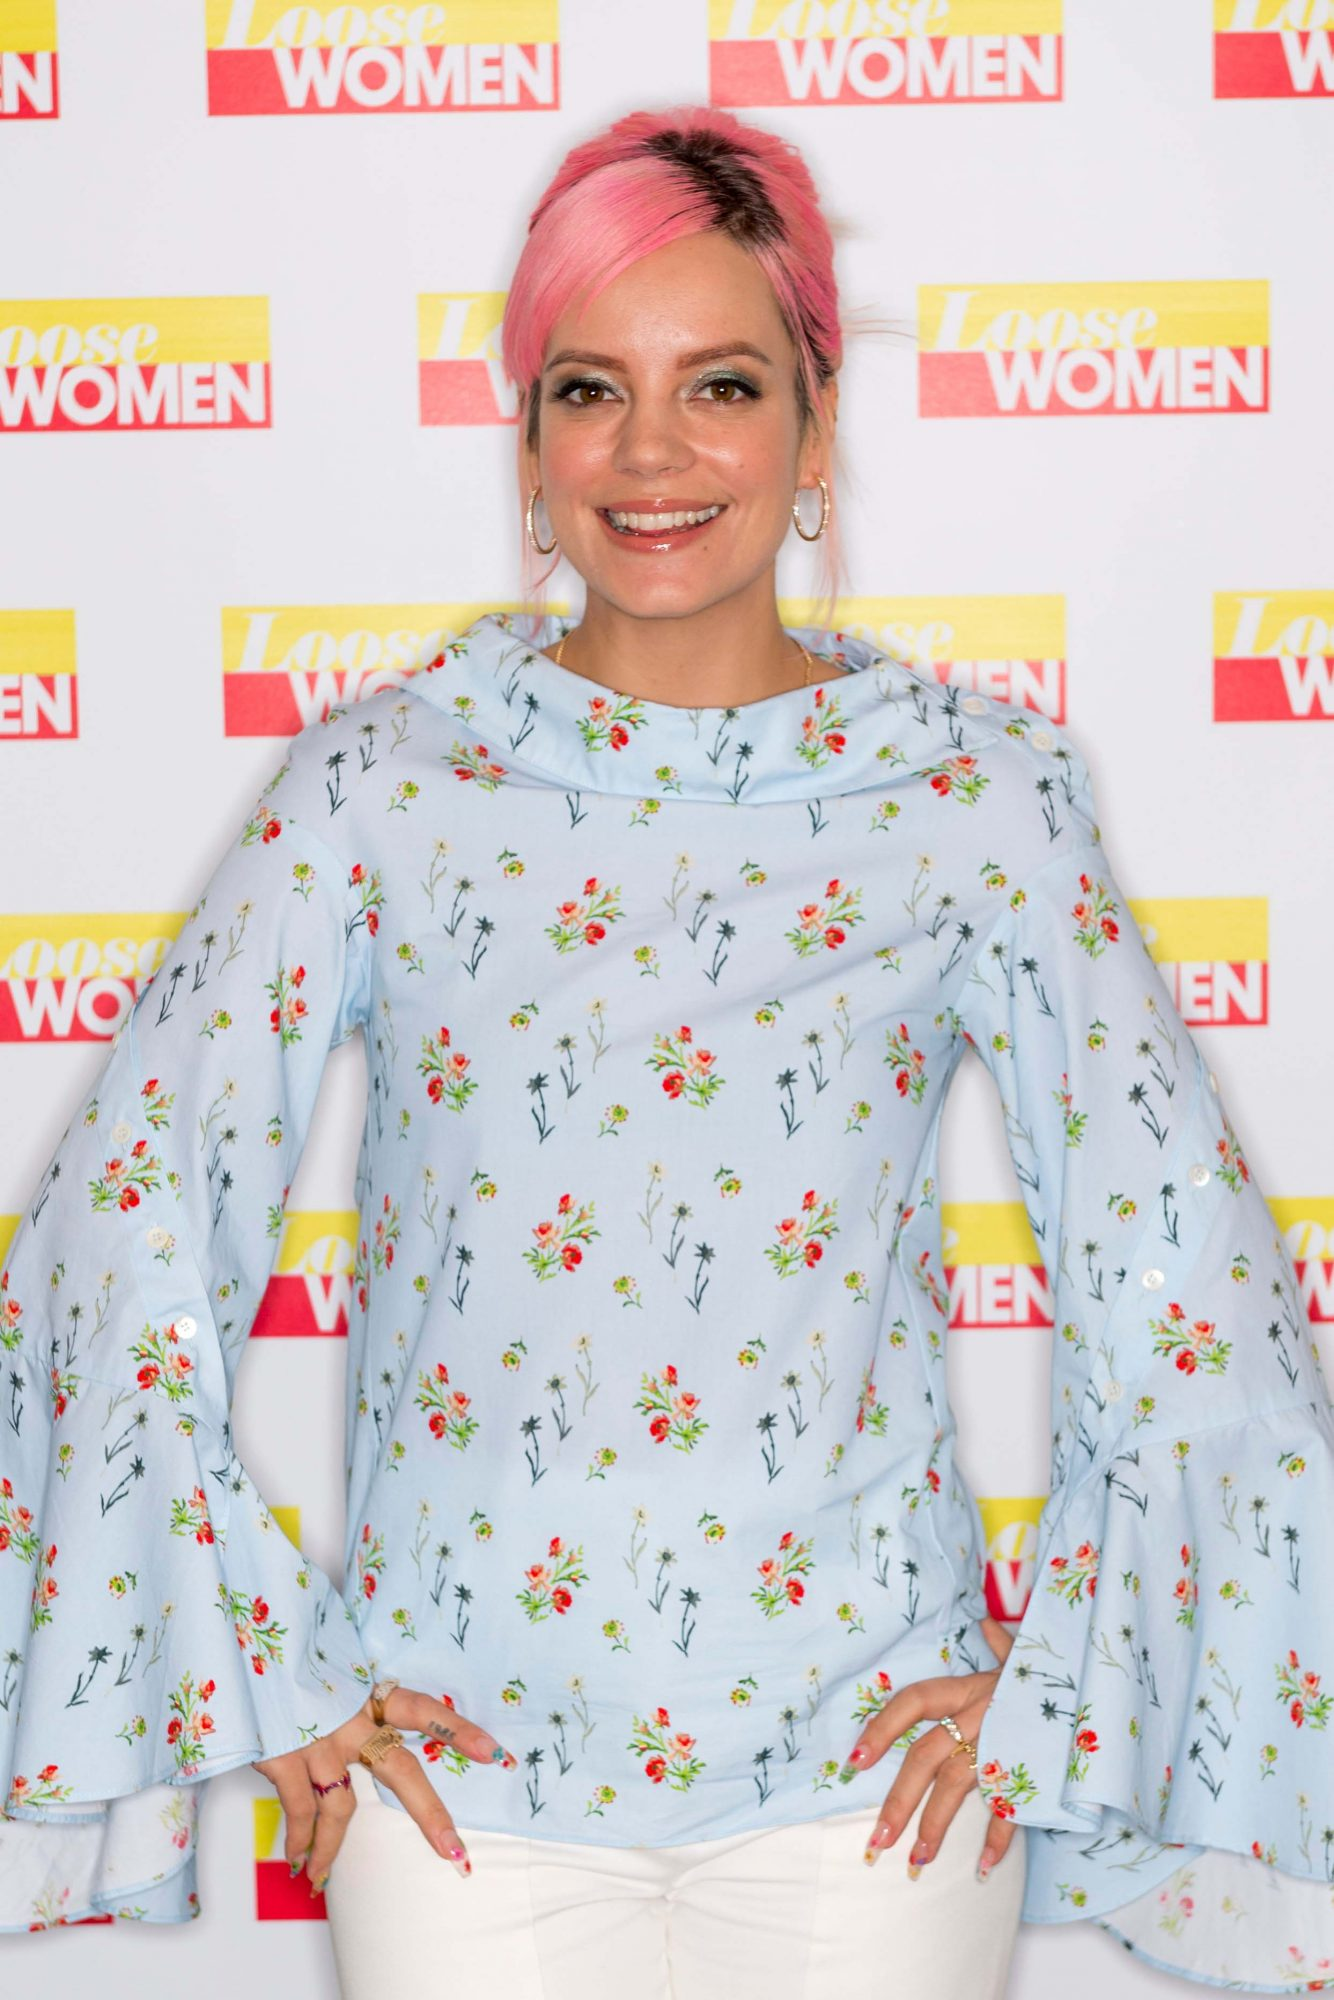 'Loose Women' TV show, London, UK - 06 Jun 2018